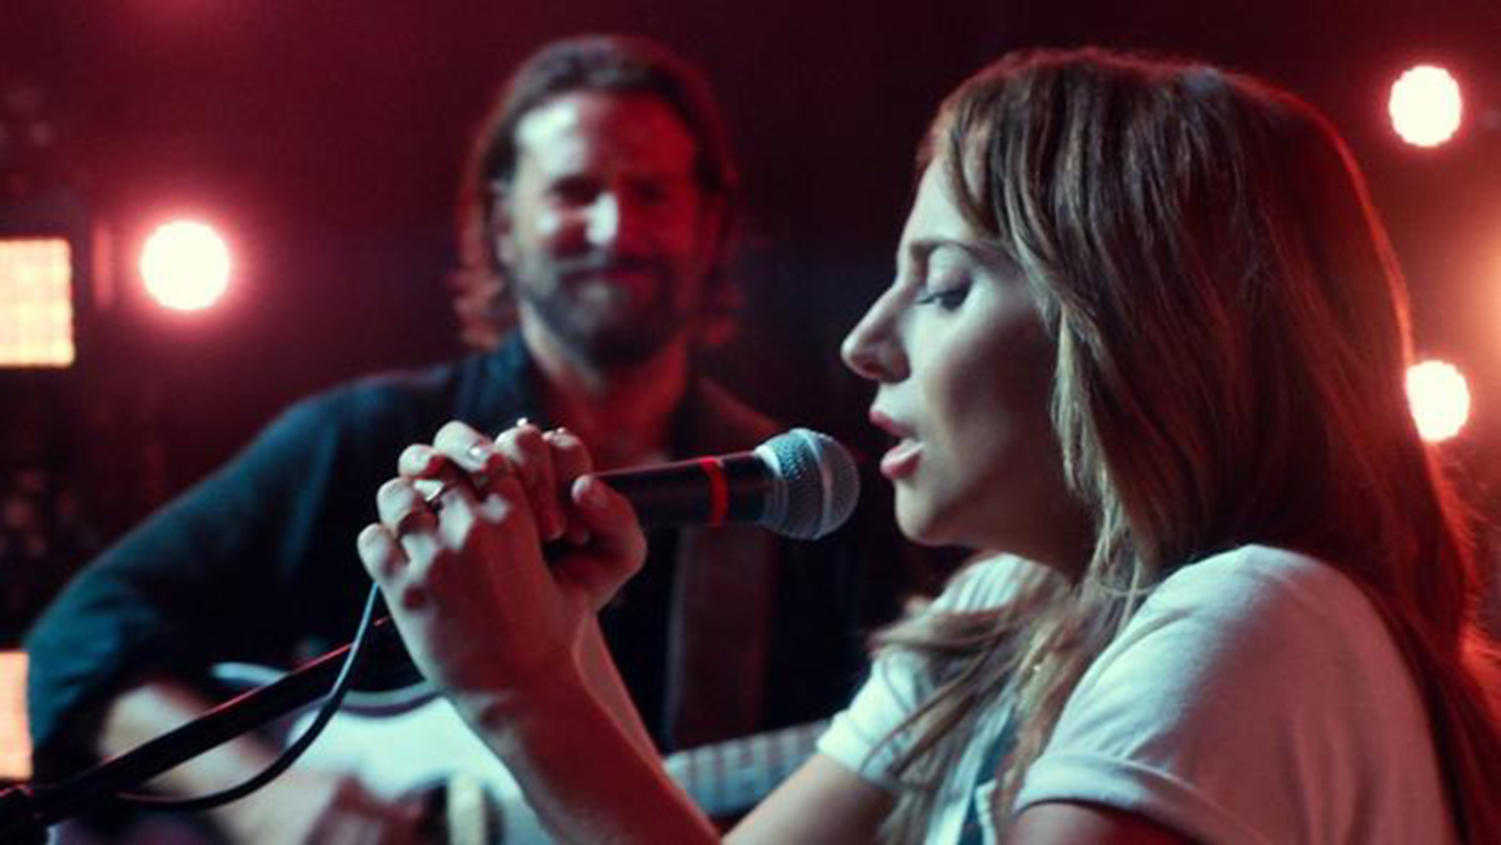 Lady Gaga's character, Ally, takes the mike onstage as Bradley Cooper looks on (Warner Bros. Pictures).